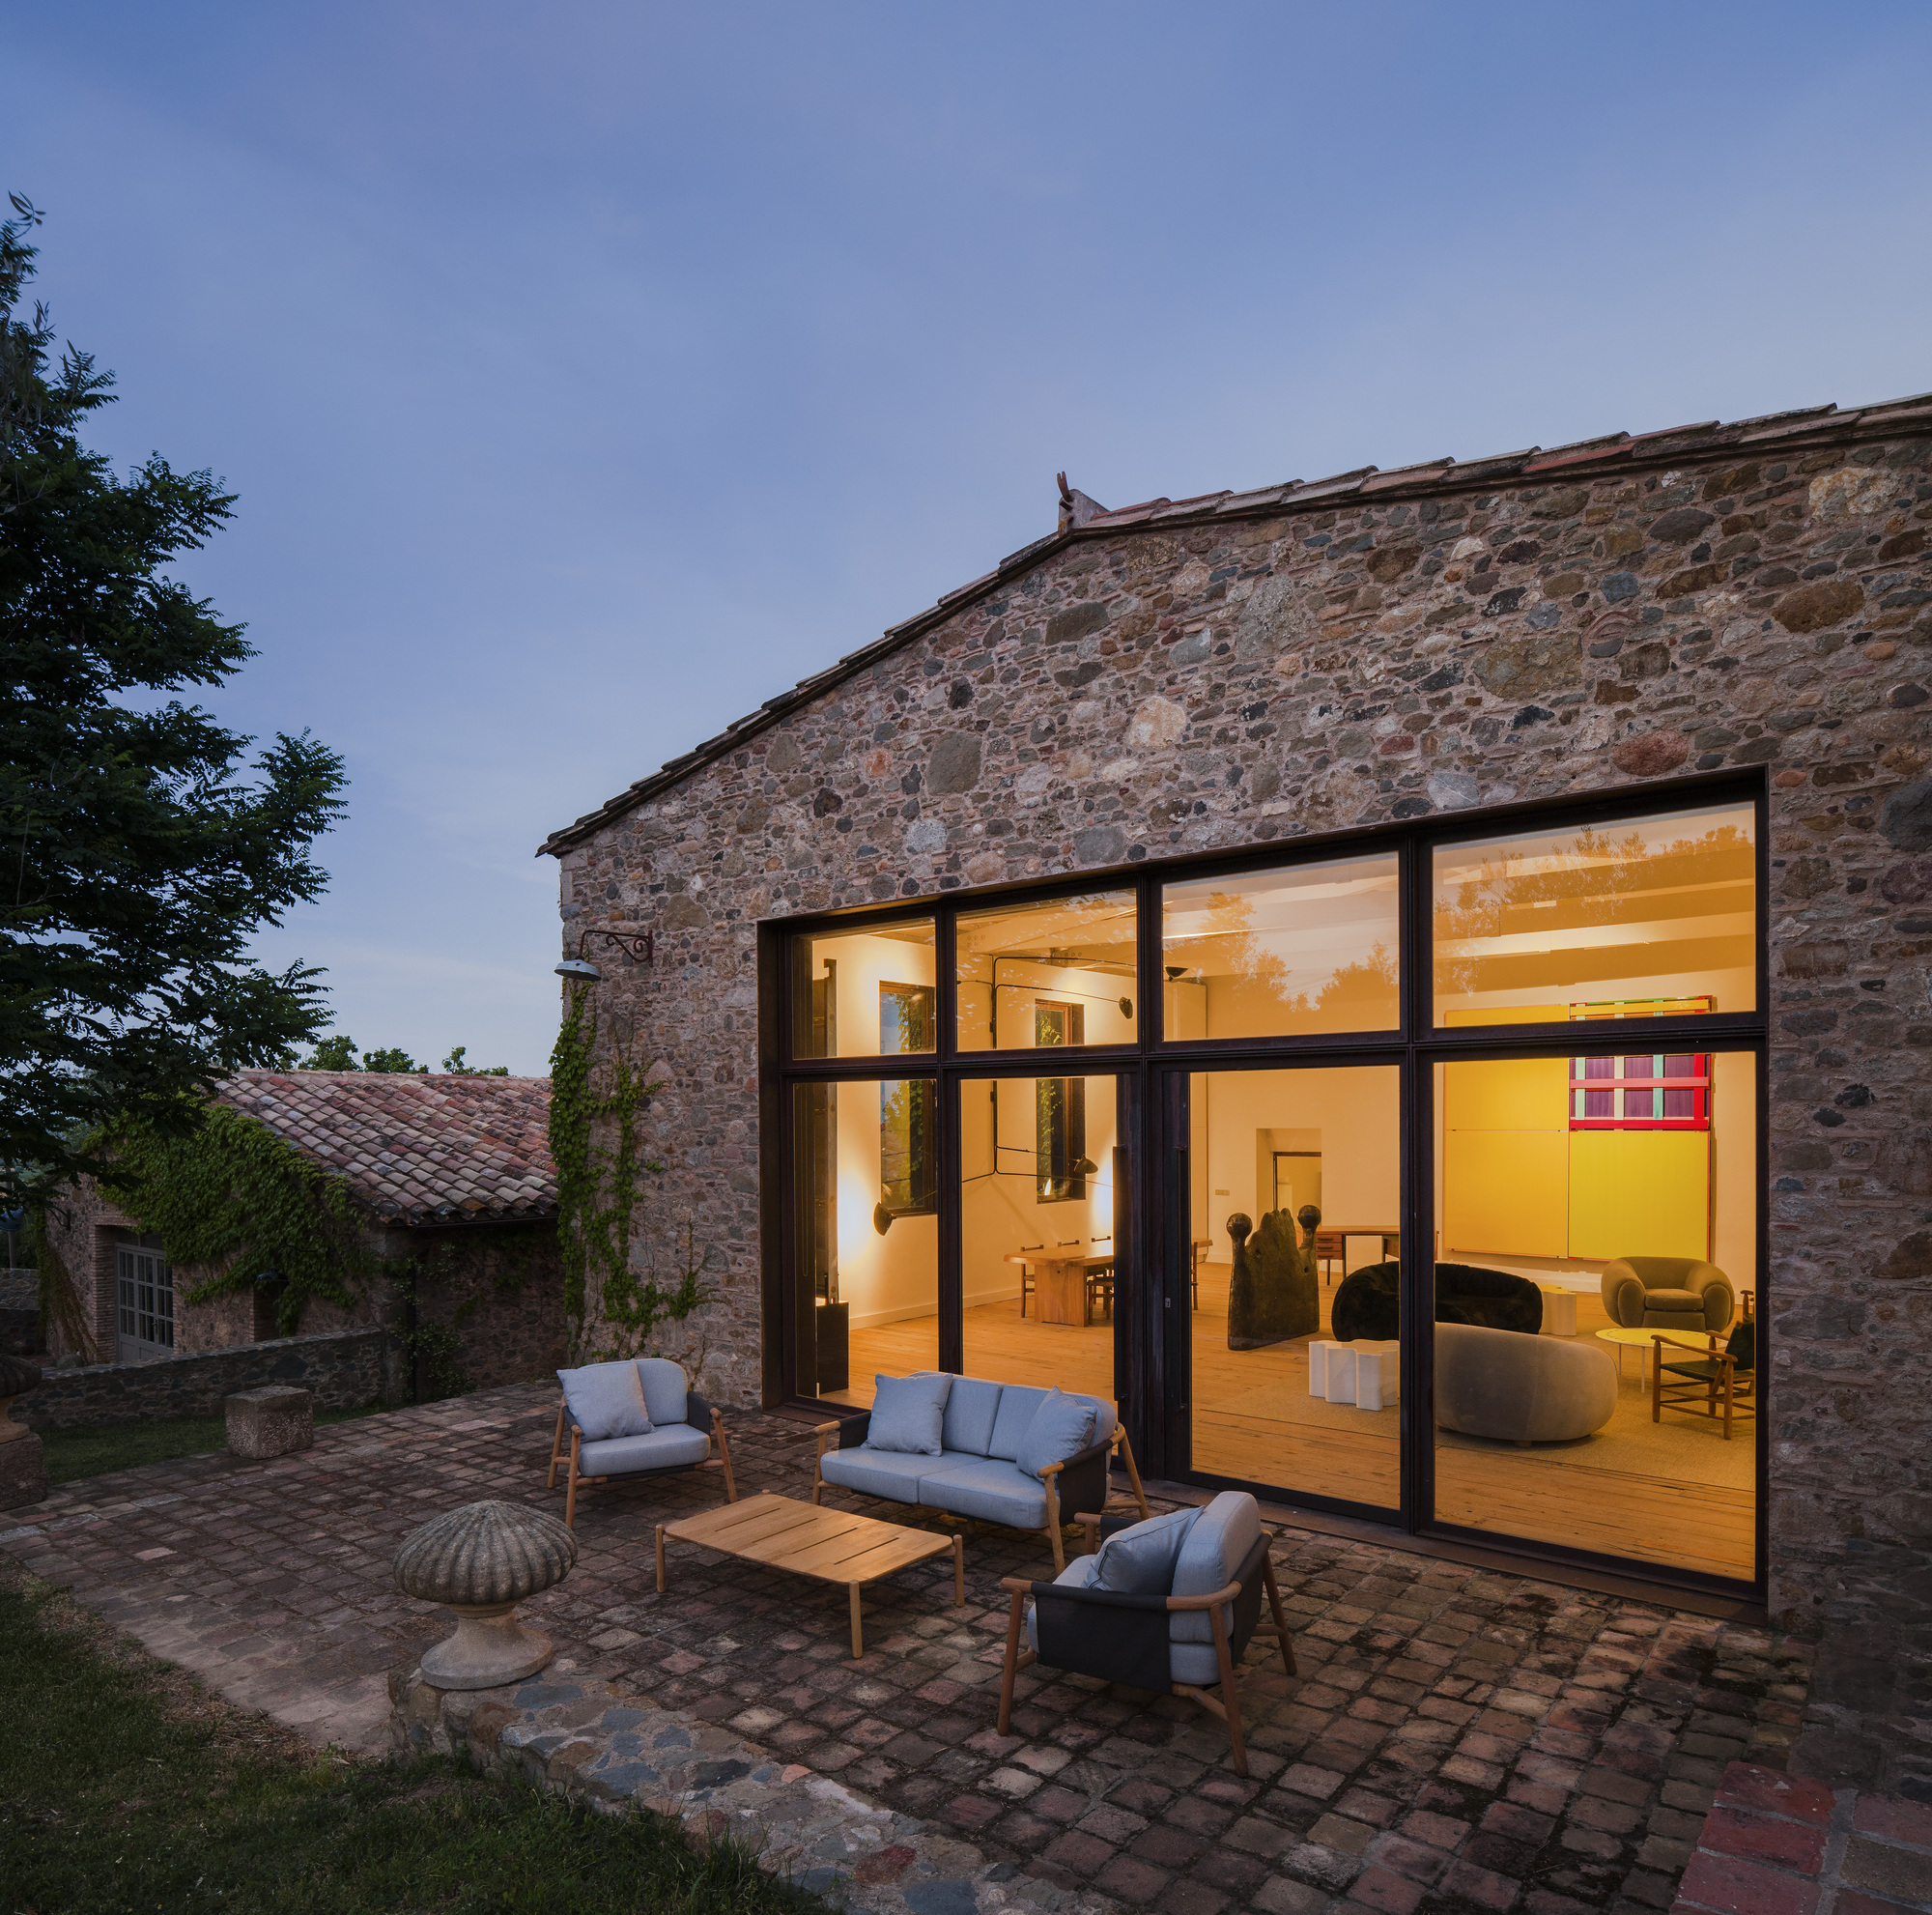 Casa empord rife design archdaily for Case in vendita